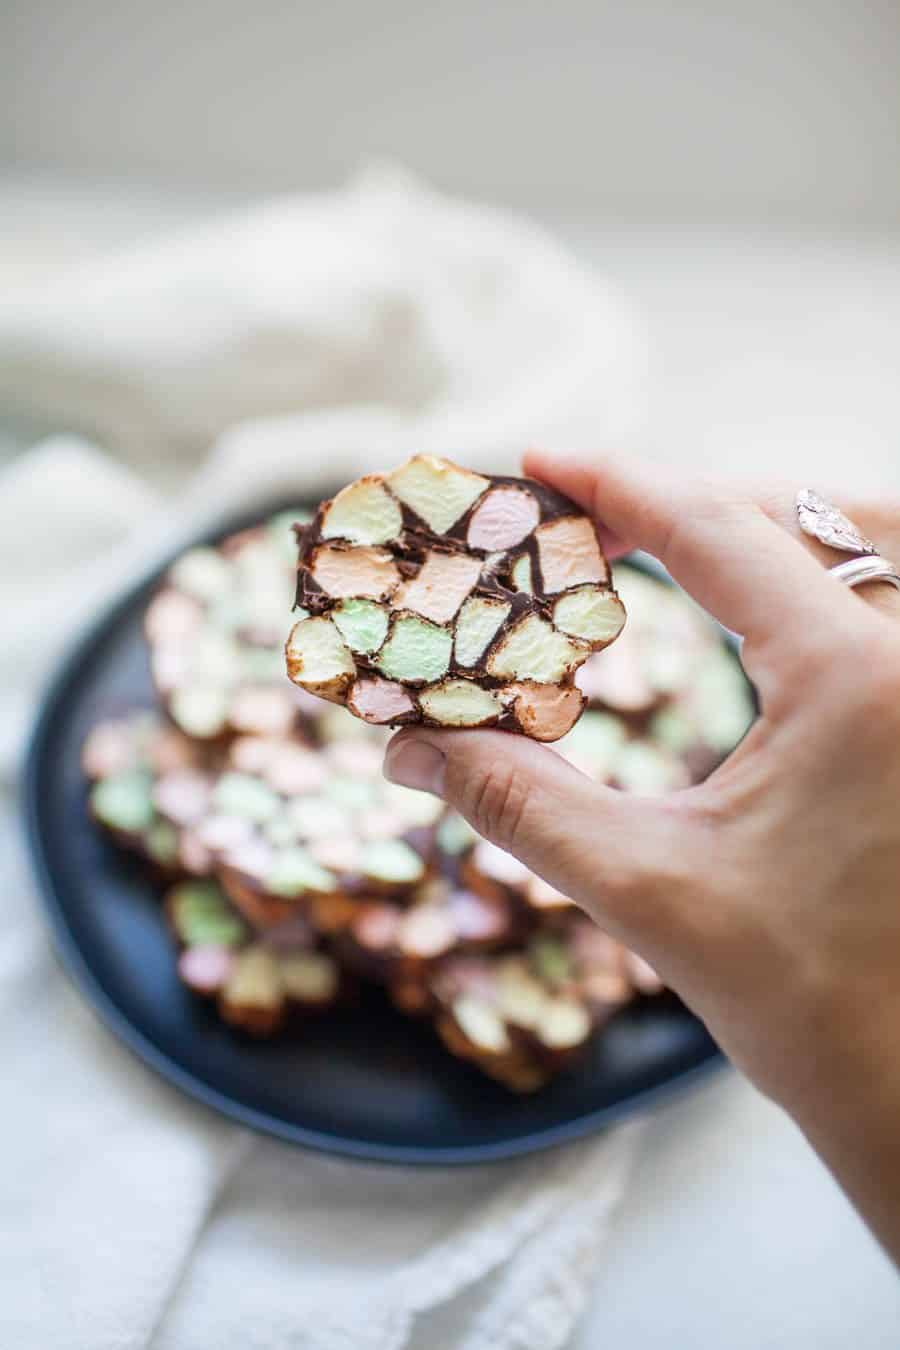 A female hand holding a cookie with colored marshmallows and chocolate.